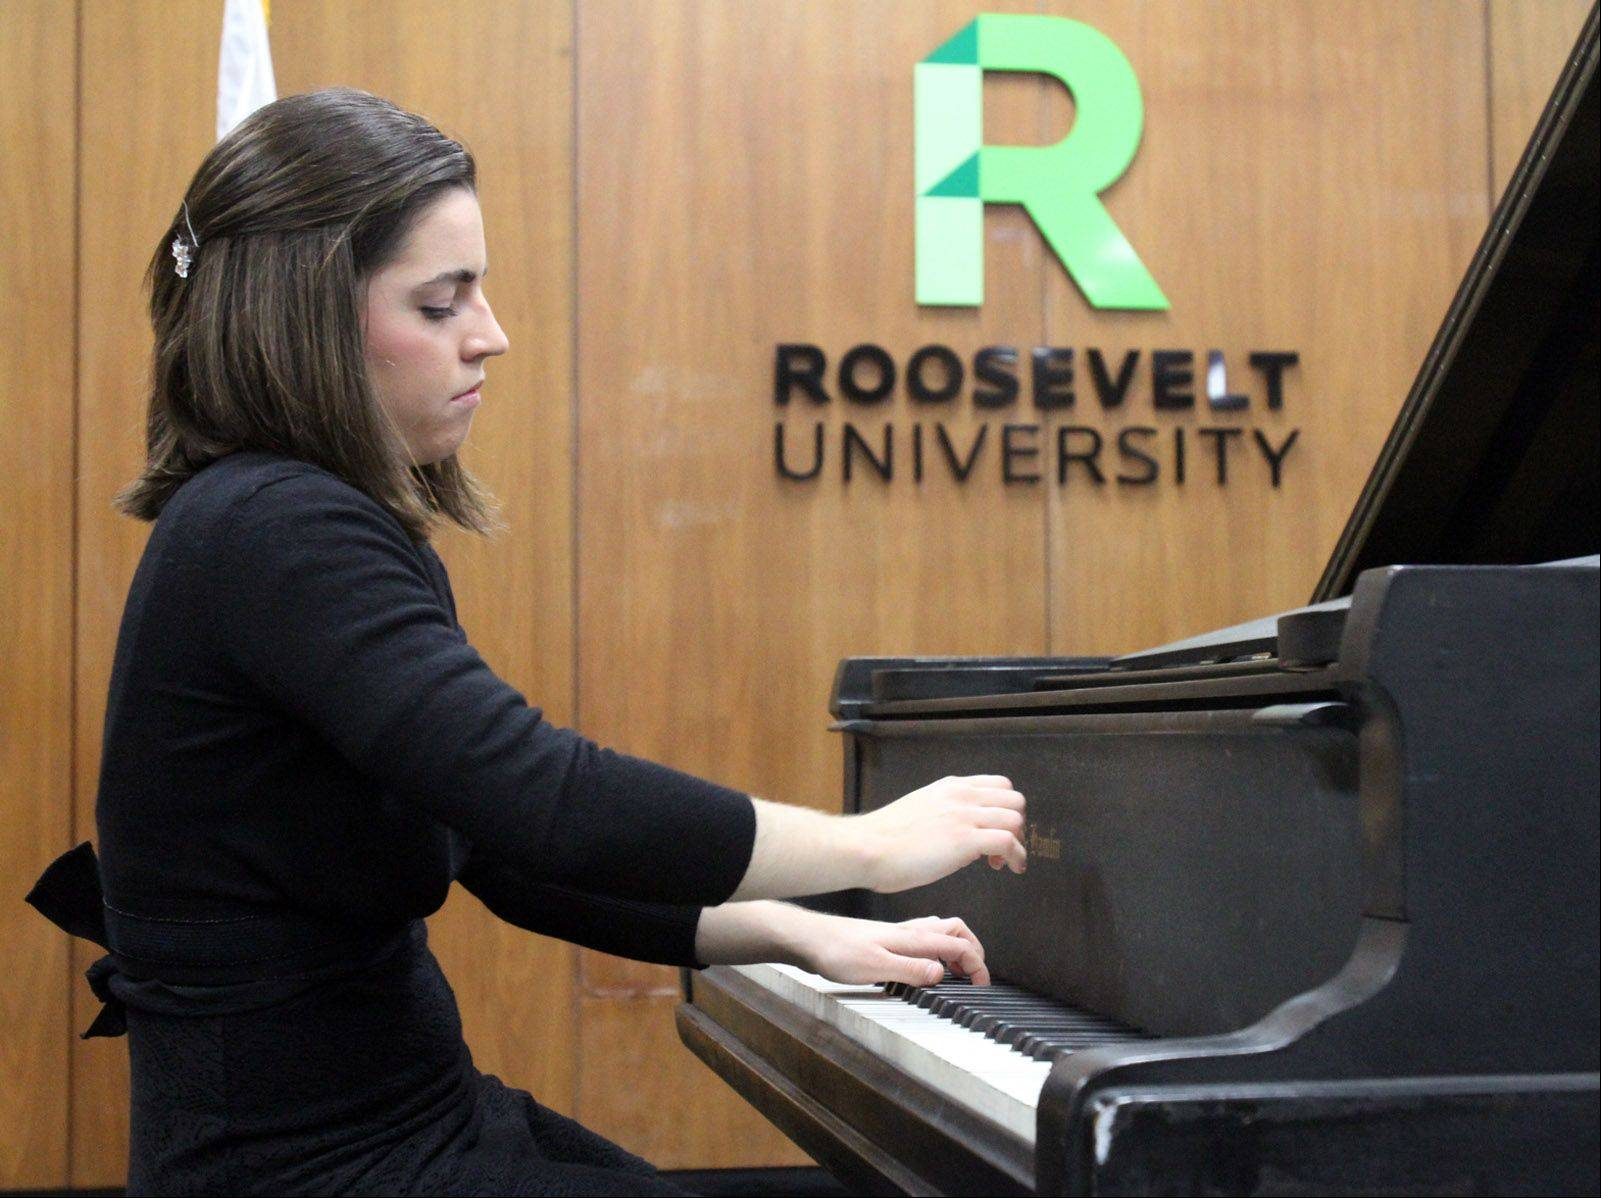 Enriqueta Somarriba, a Roosevelt University student born in Spain, plays Haydn Sonata in C major. She was among the award-winning pianists from Roosevelt's College of Performing Arts to perform in a piano showcase recital at the university's Schaumburg campus Tuesday.